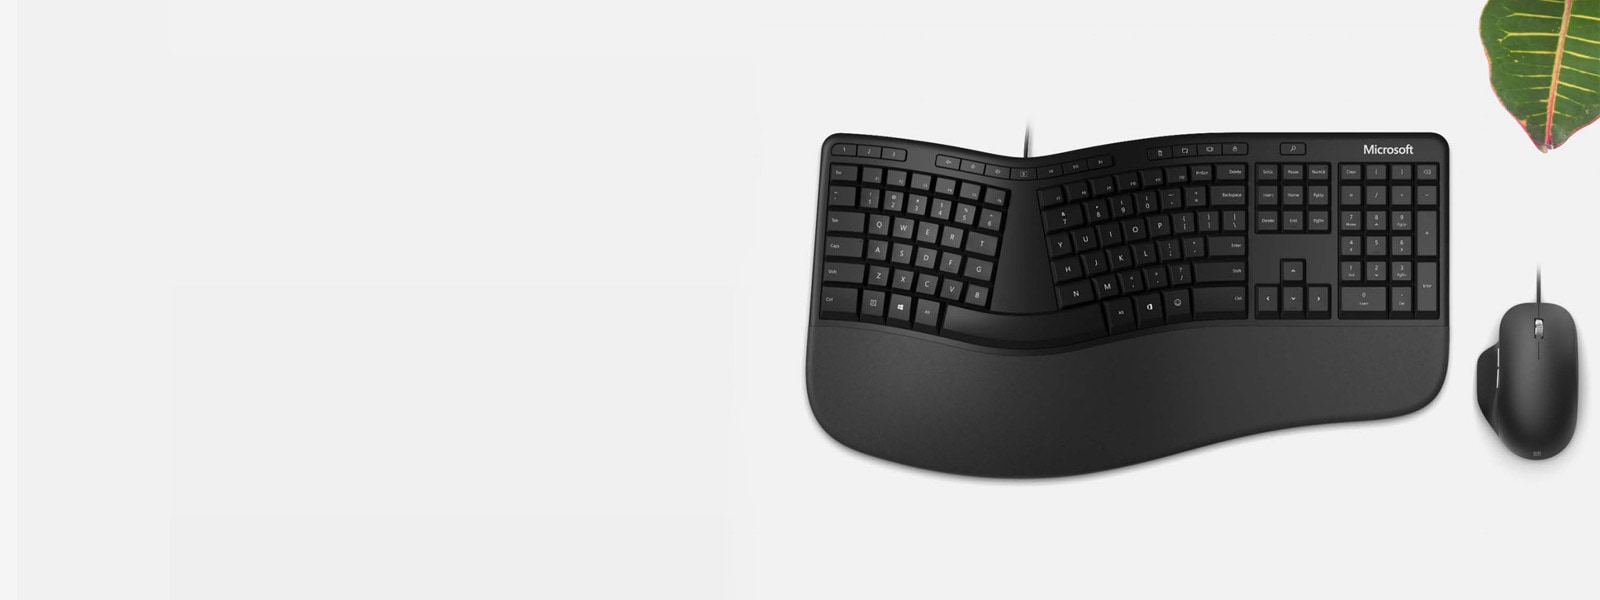 A Microsoft Ergonomic Keyboard and a Microsoft Ergonomic Mouse sit on a desk next to a plant